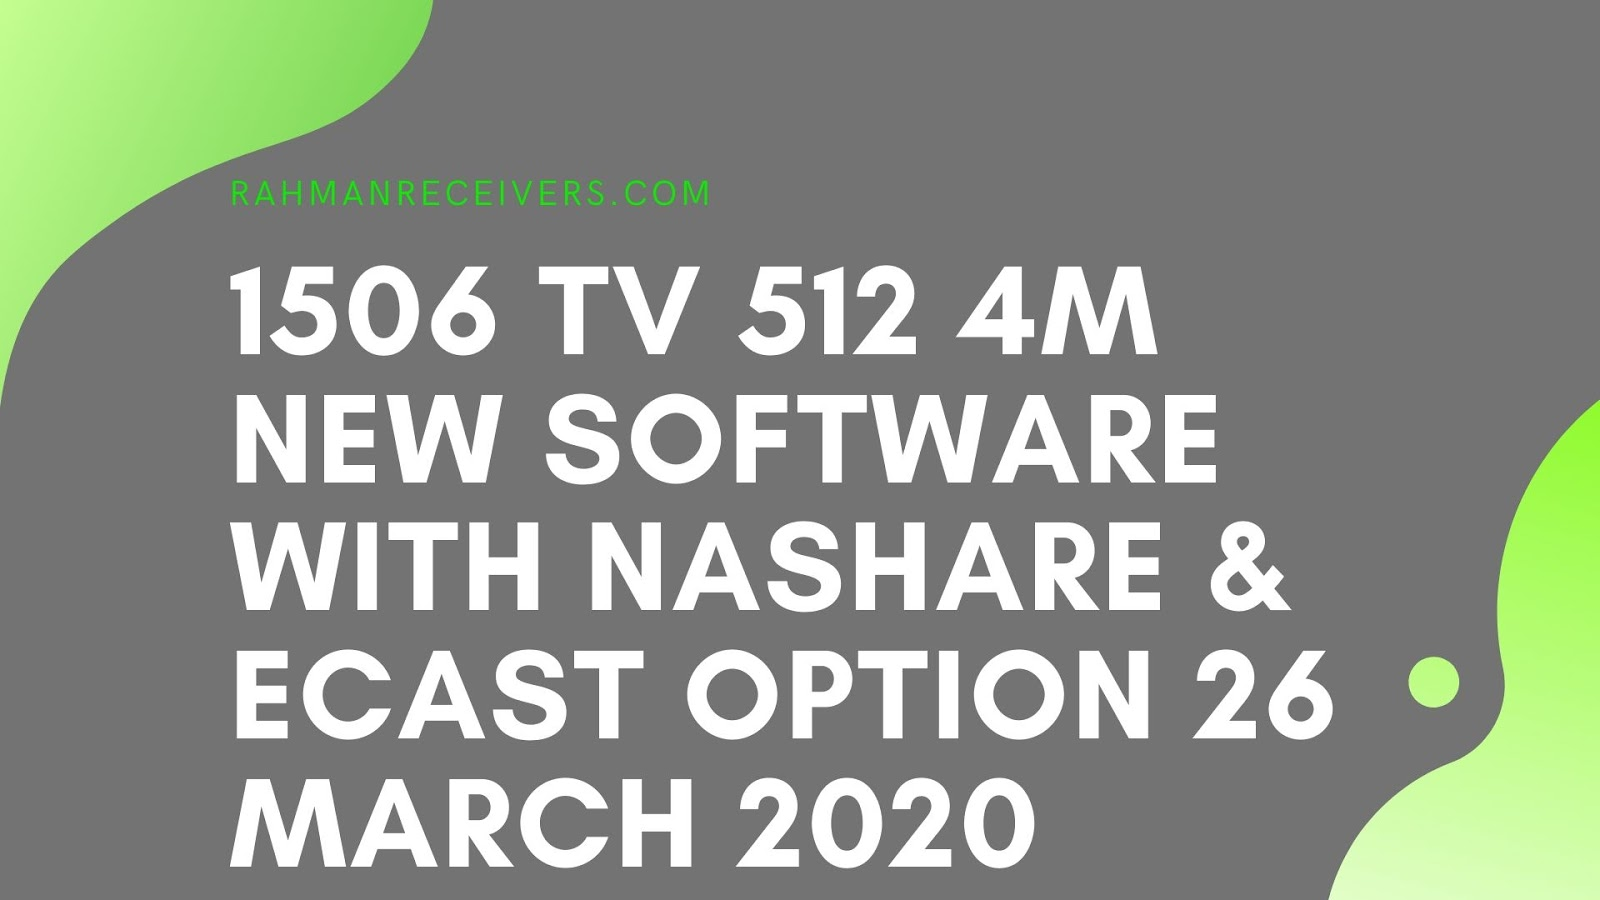 1506 TV 512 4M NEW SOFTWARE WITH NASHARE & ECAST OPTION 26 MARCH 2020